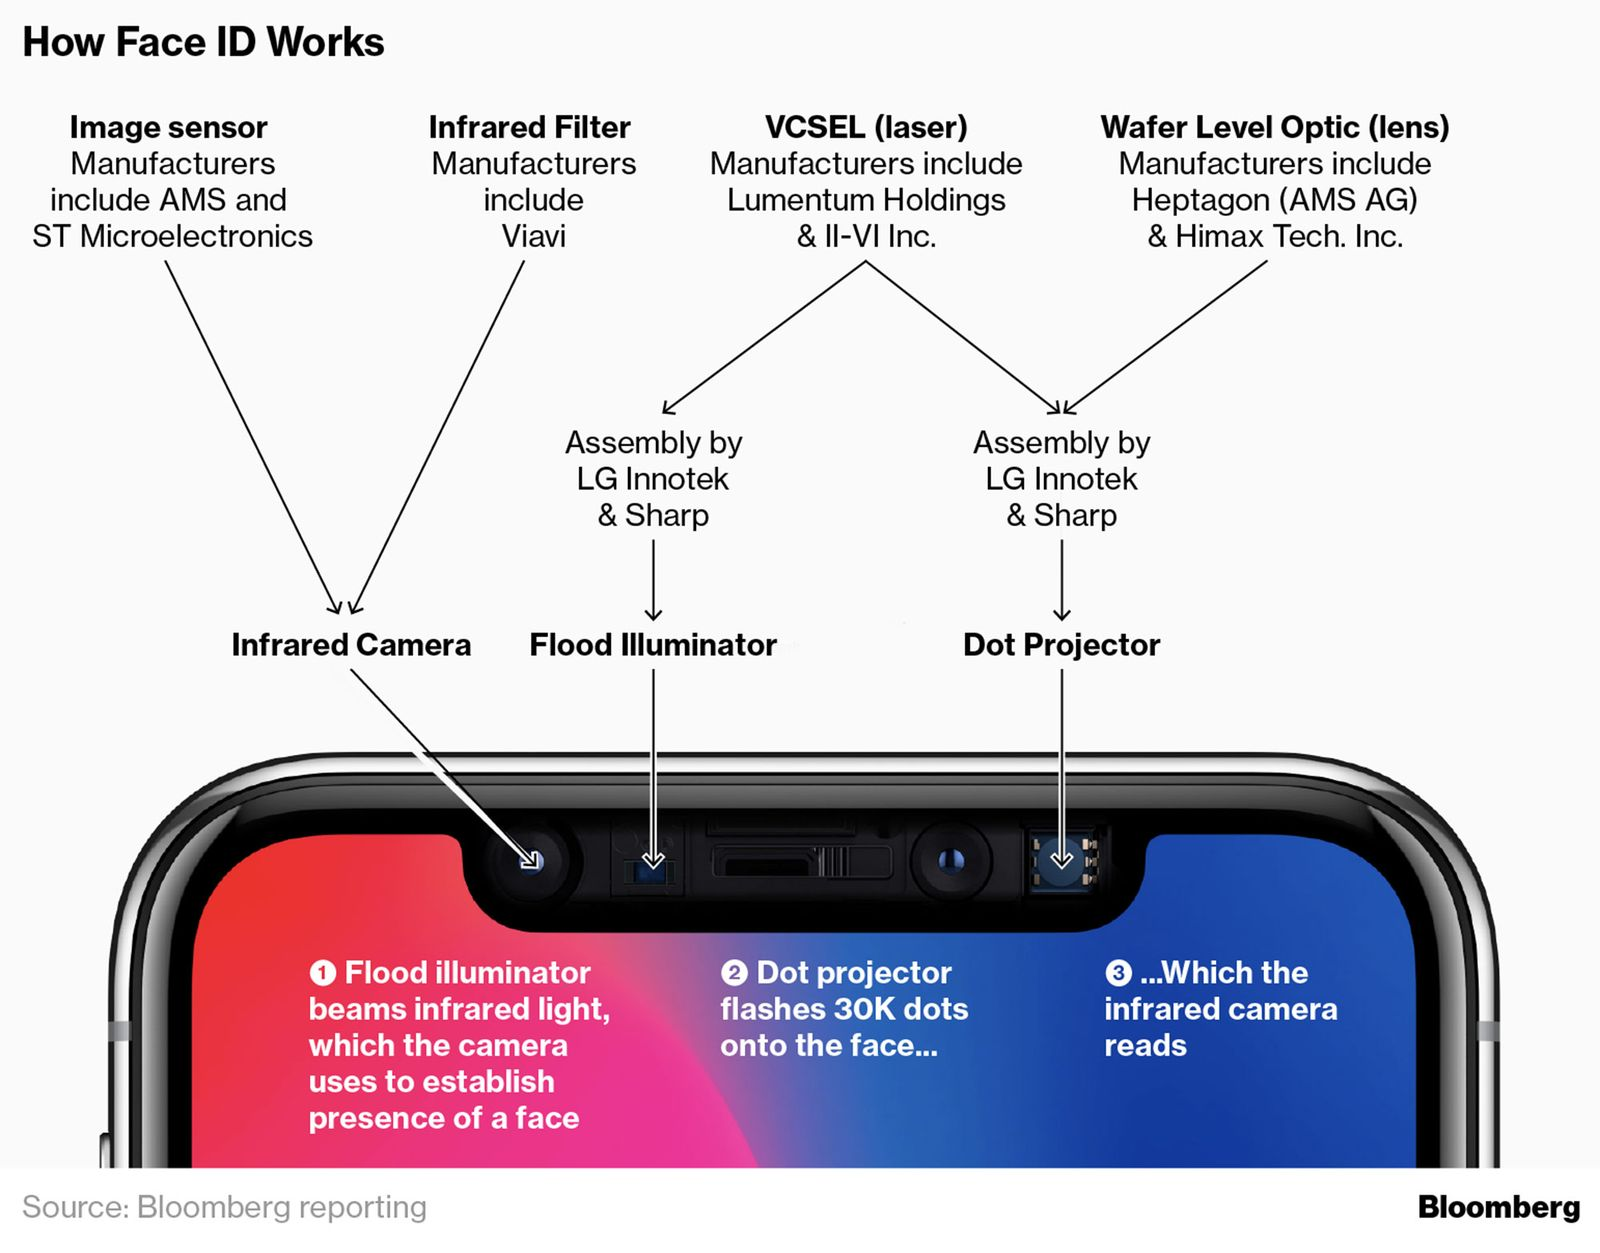 How Face ID works